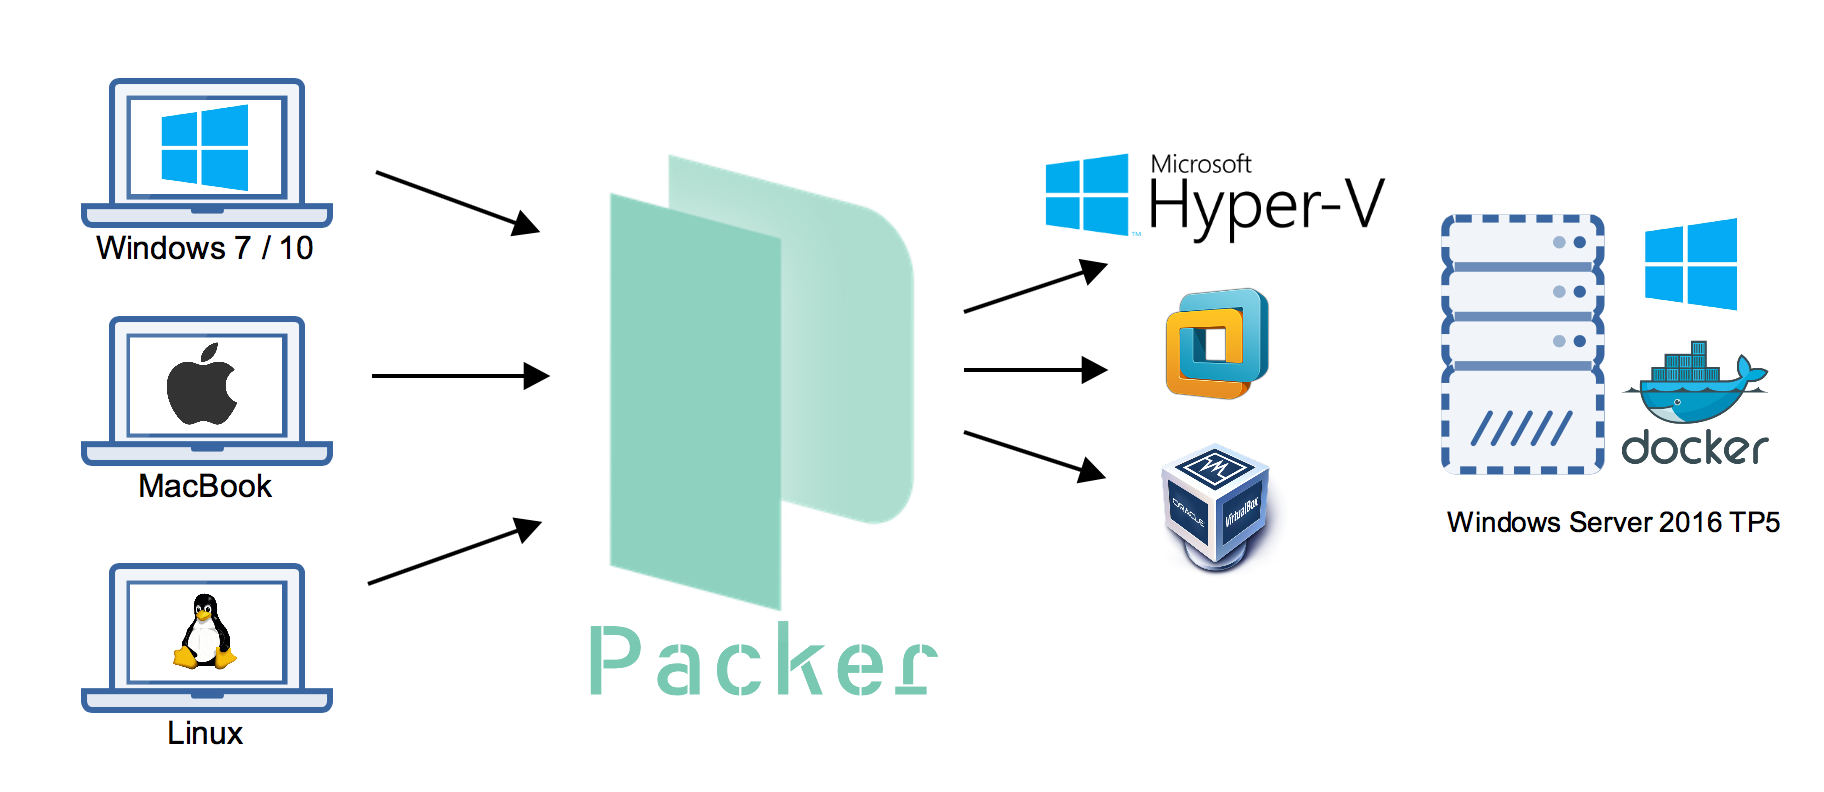 Adding Hyper-V support to 2016 TP5 Docker VM